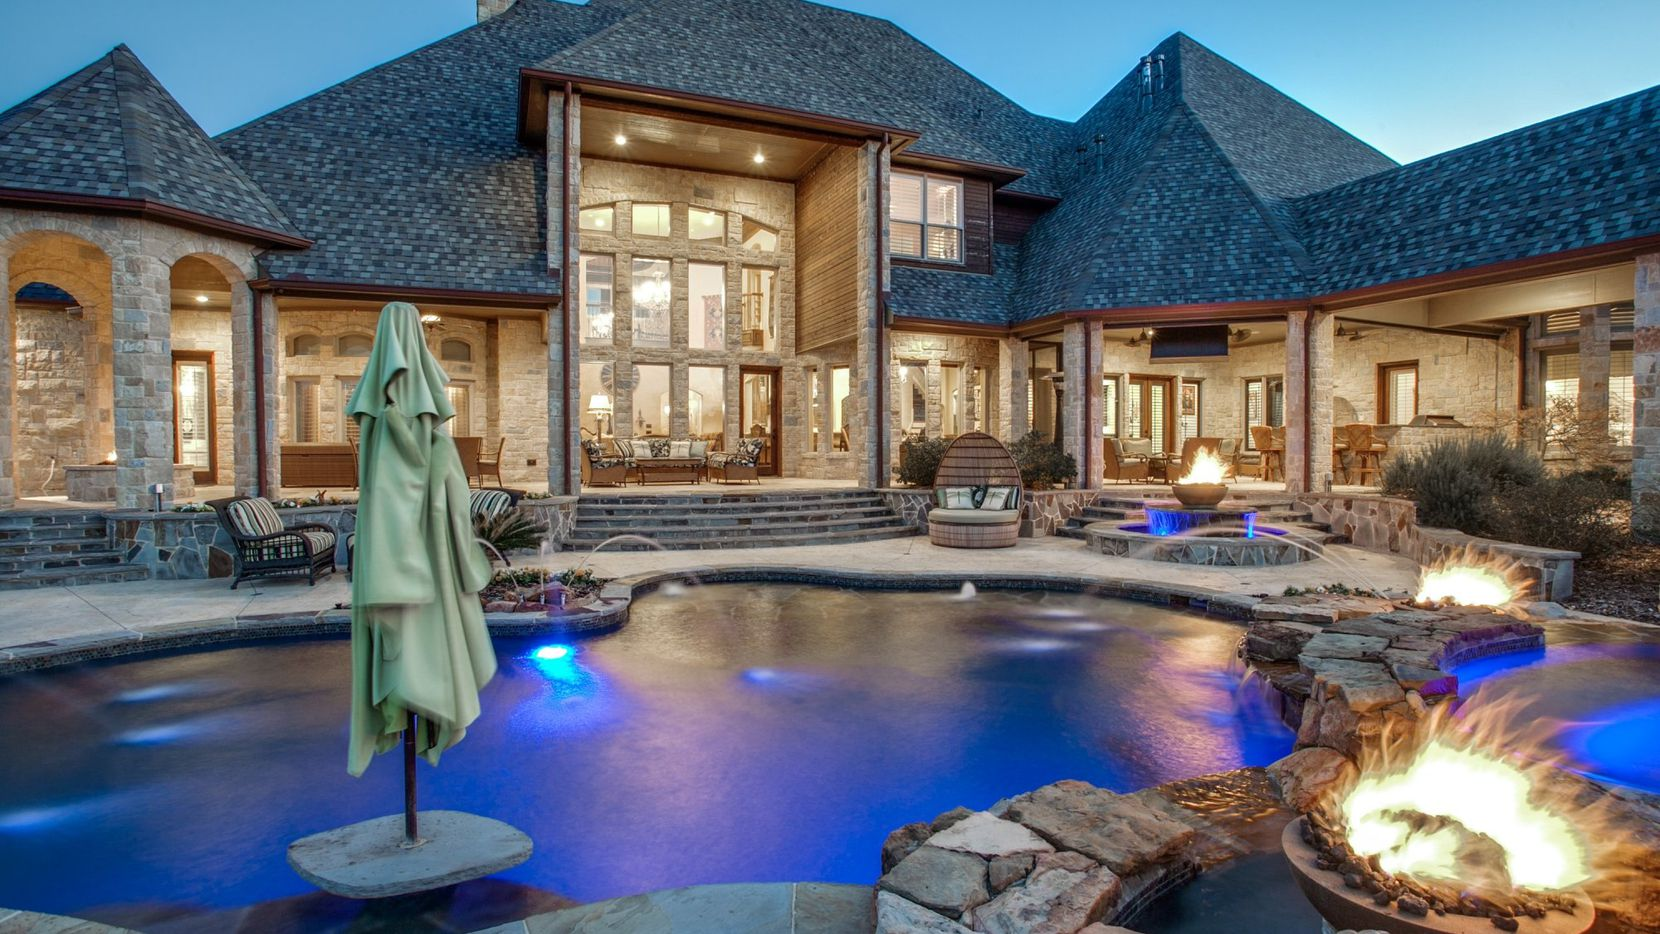 Cool Pools For The Summer 20 Stunning Pools At D Fw Homes On The Market